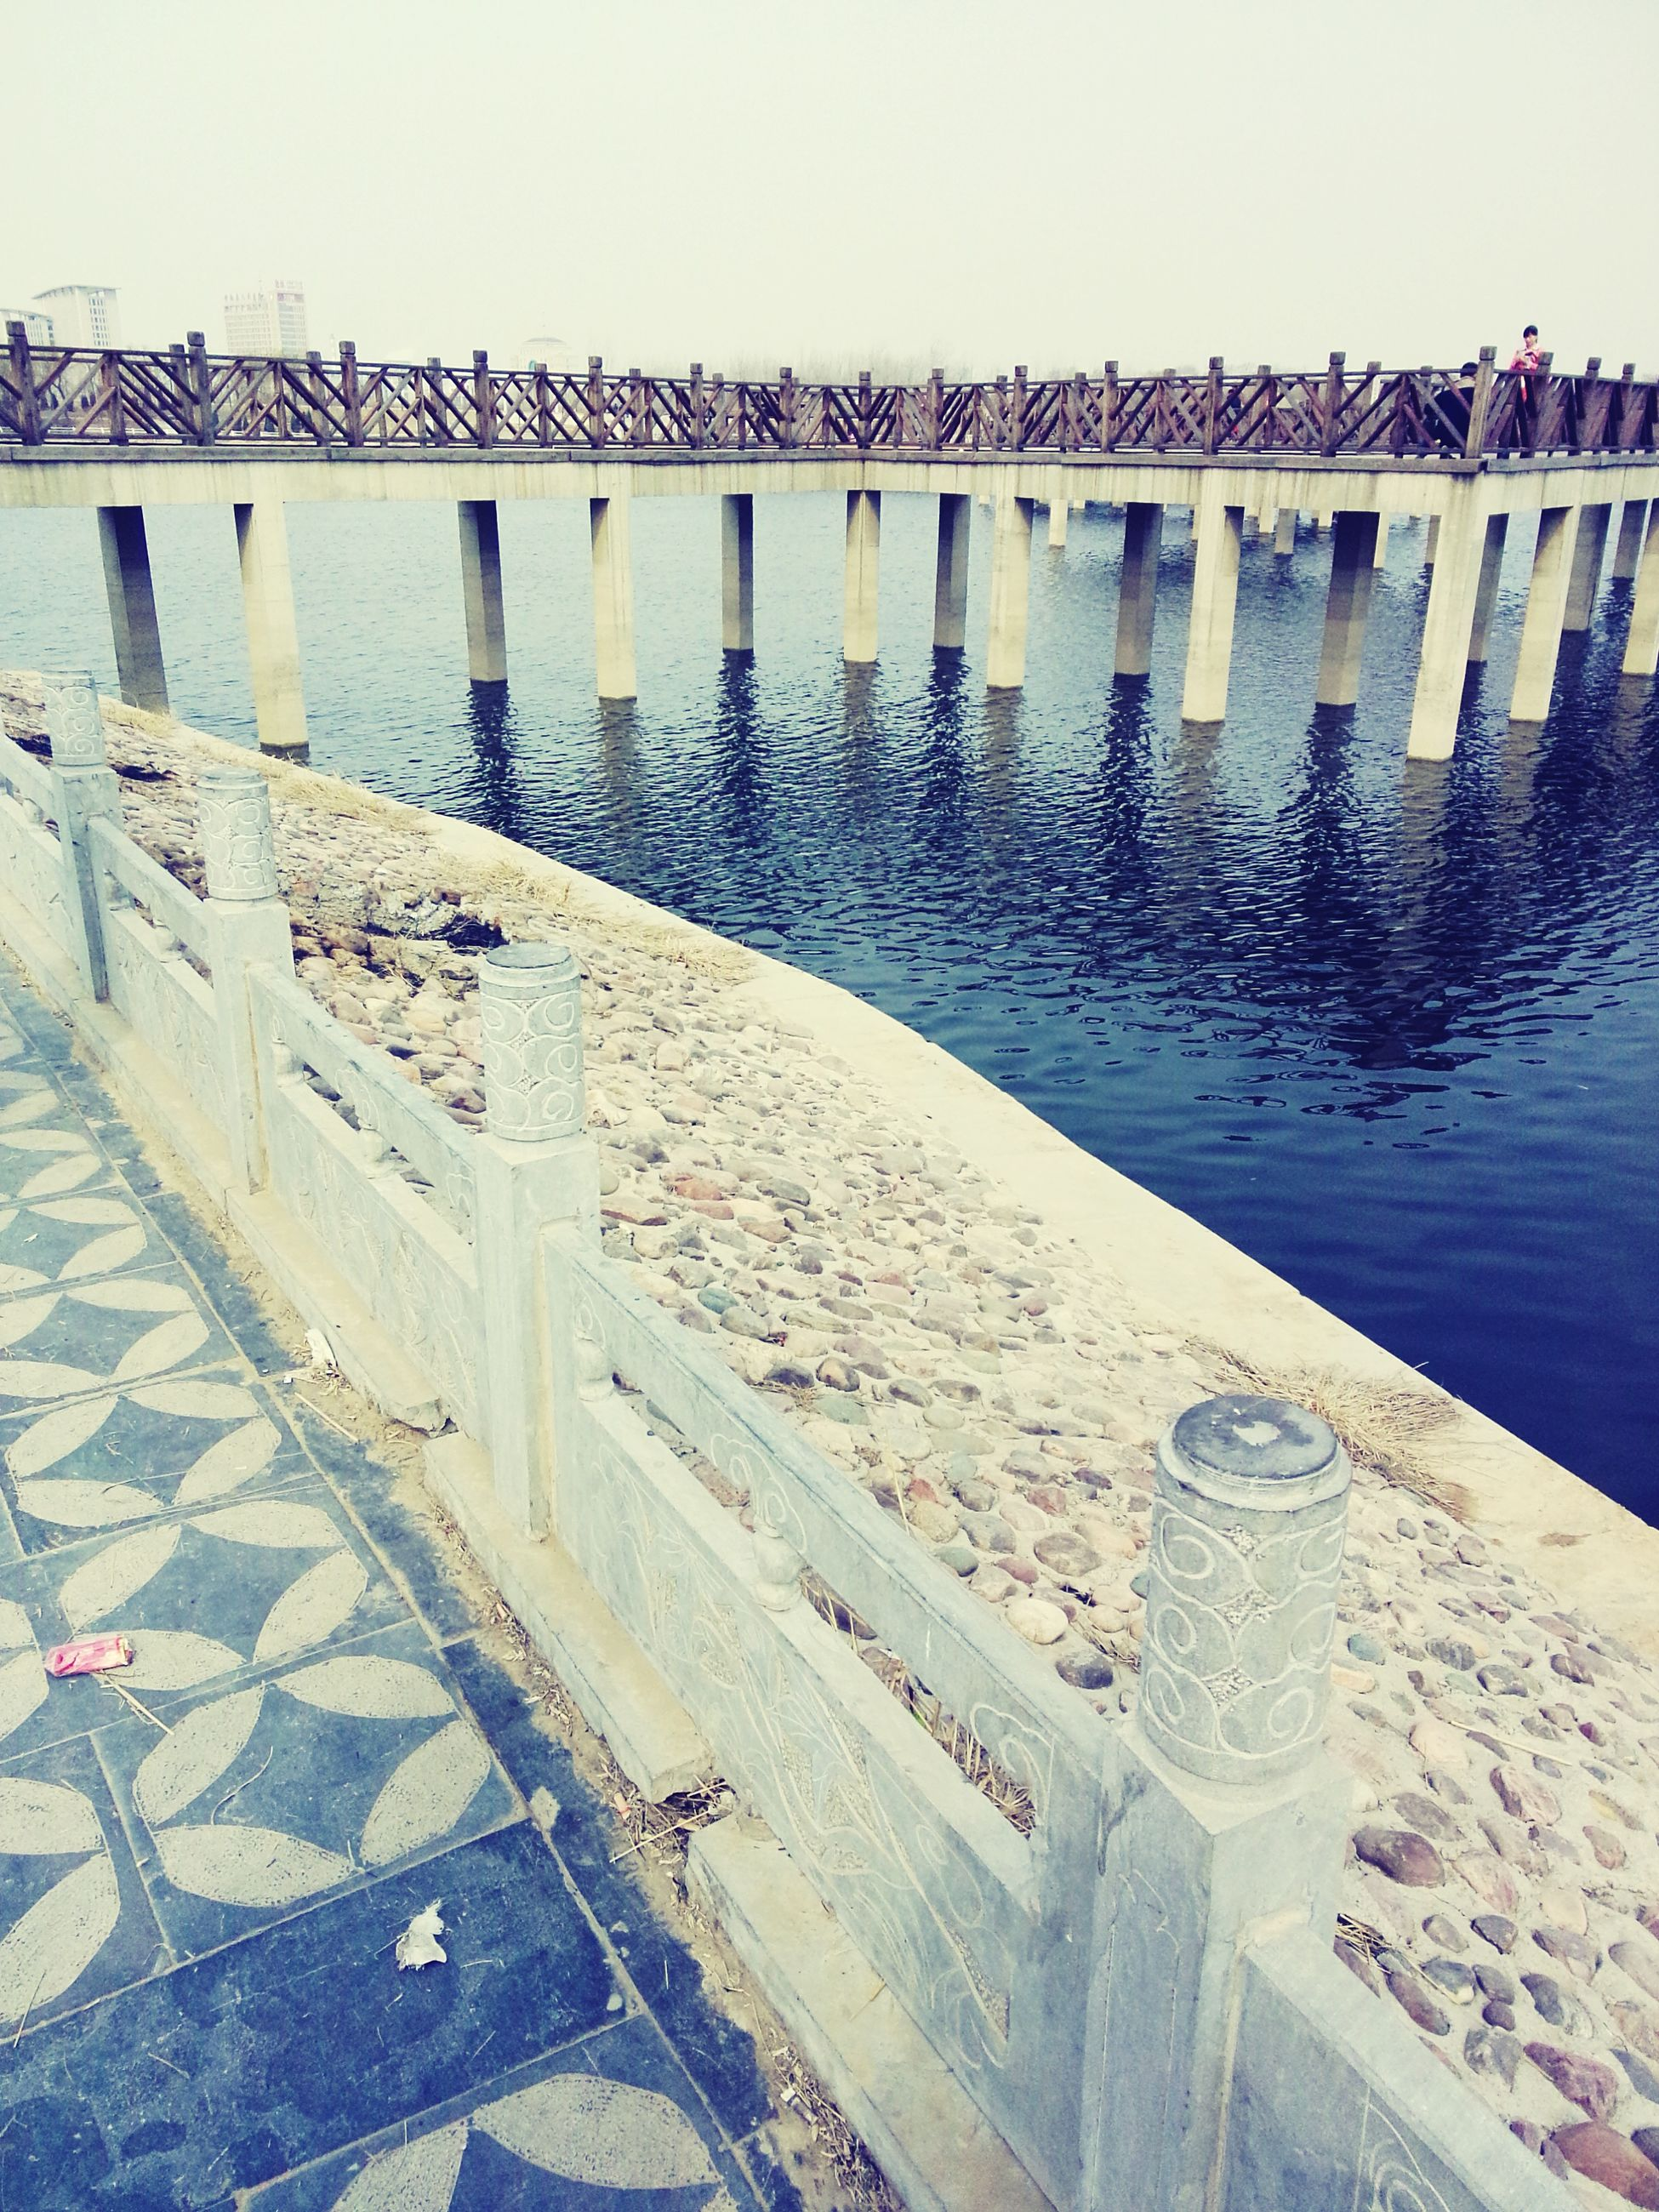 water, built structure, architecture, clear sky, building exterior, pier, river, day, bridge - man made structure, sea, railing, high angle view, outdoors, transportation, lake, no people, connection, in a row, nature, waterfront